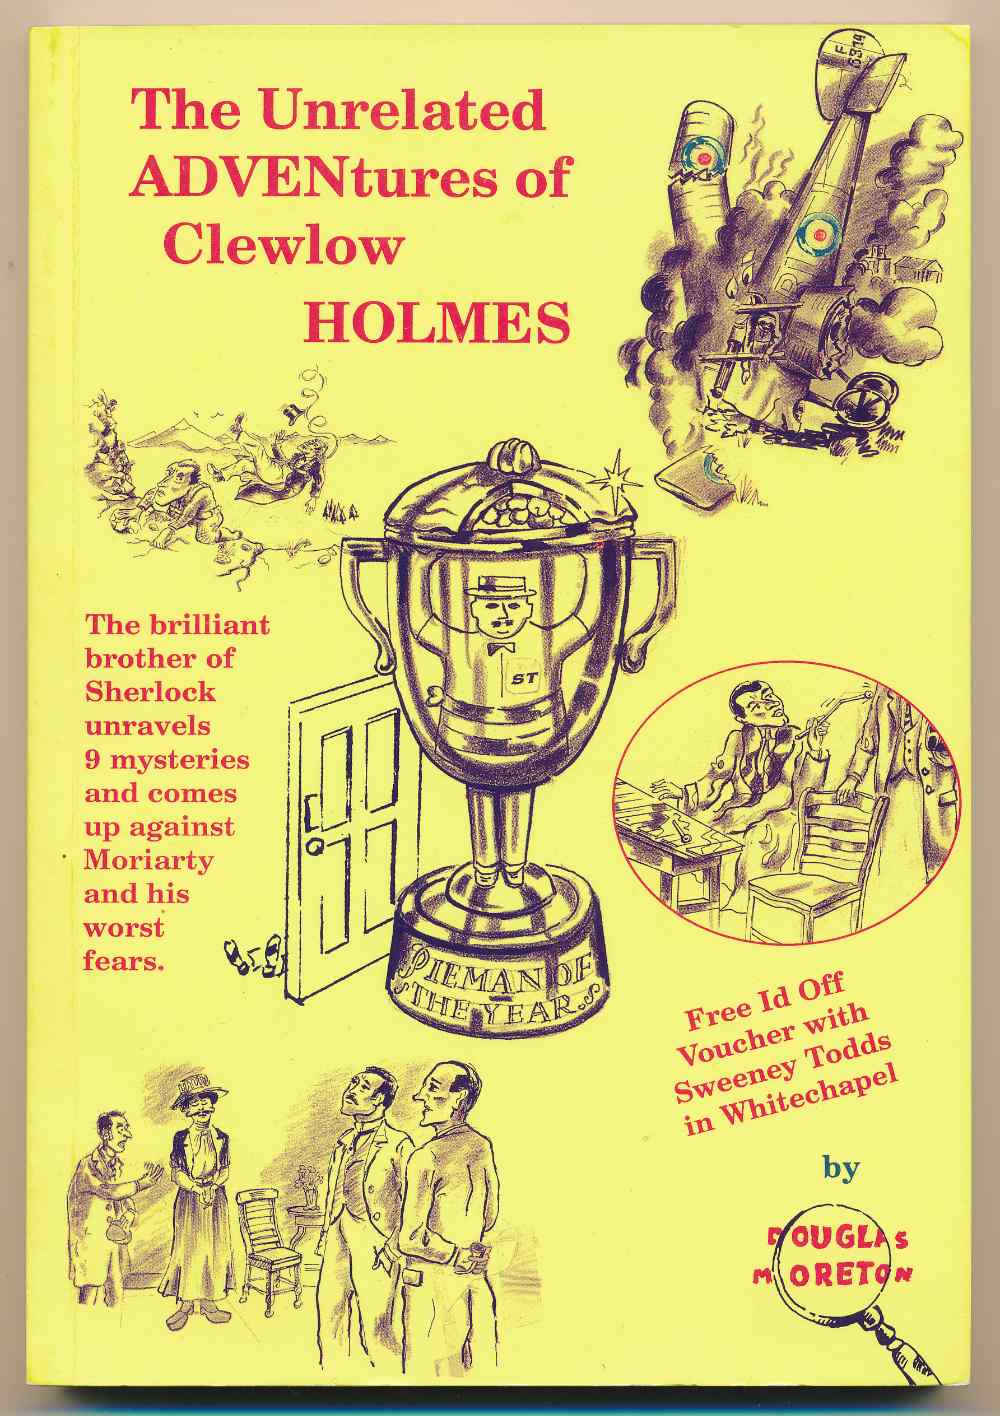 The unrelated adventures of Clewlow Holmes